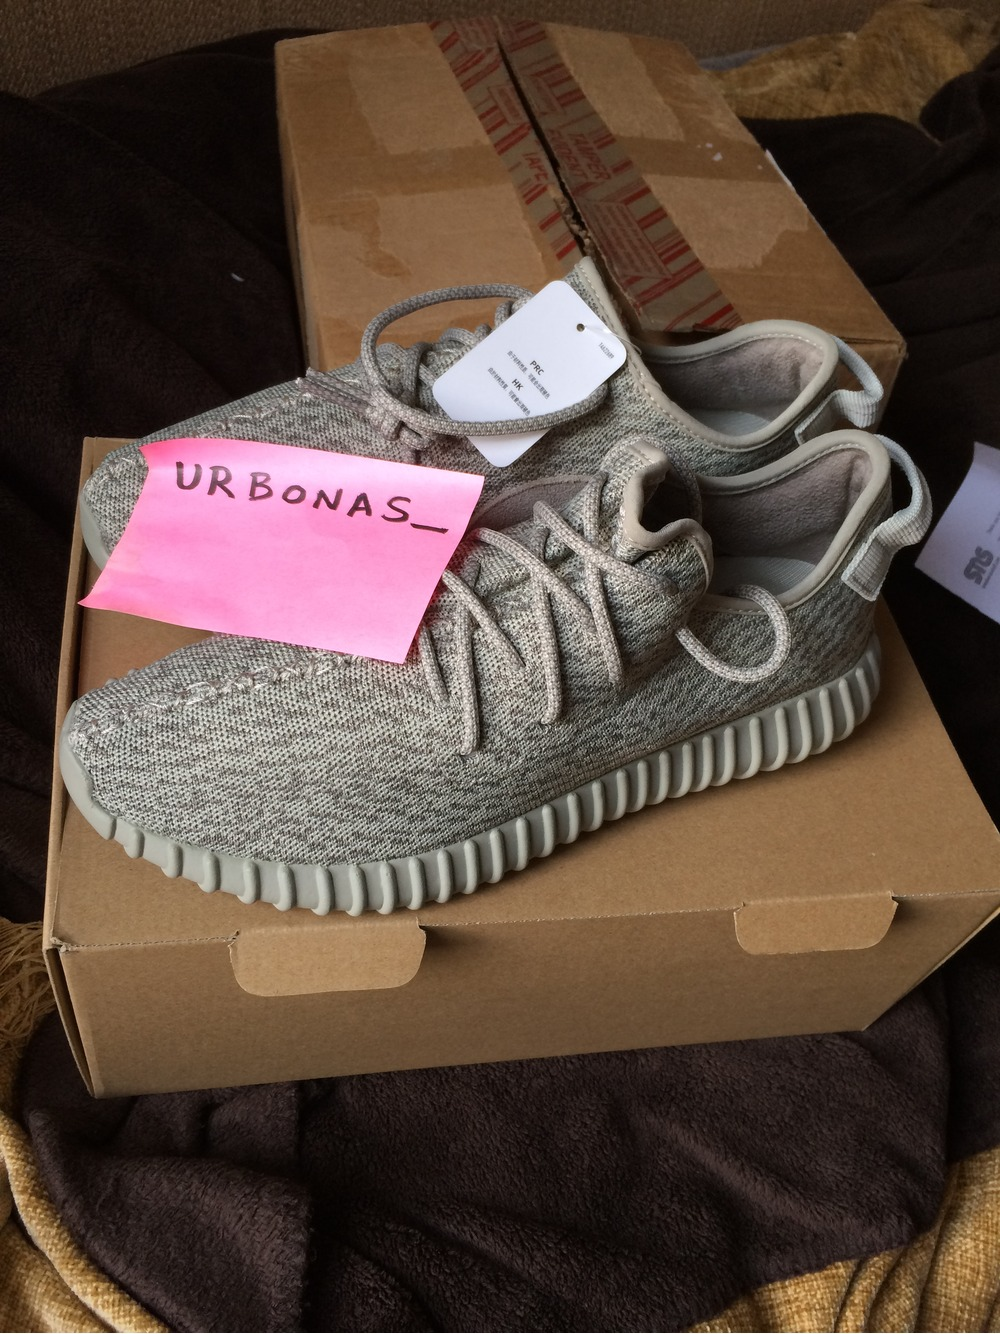 Adidas Yeezy Boost 350 Moonrock Official Images And Full